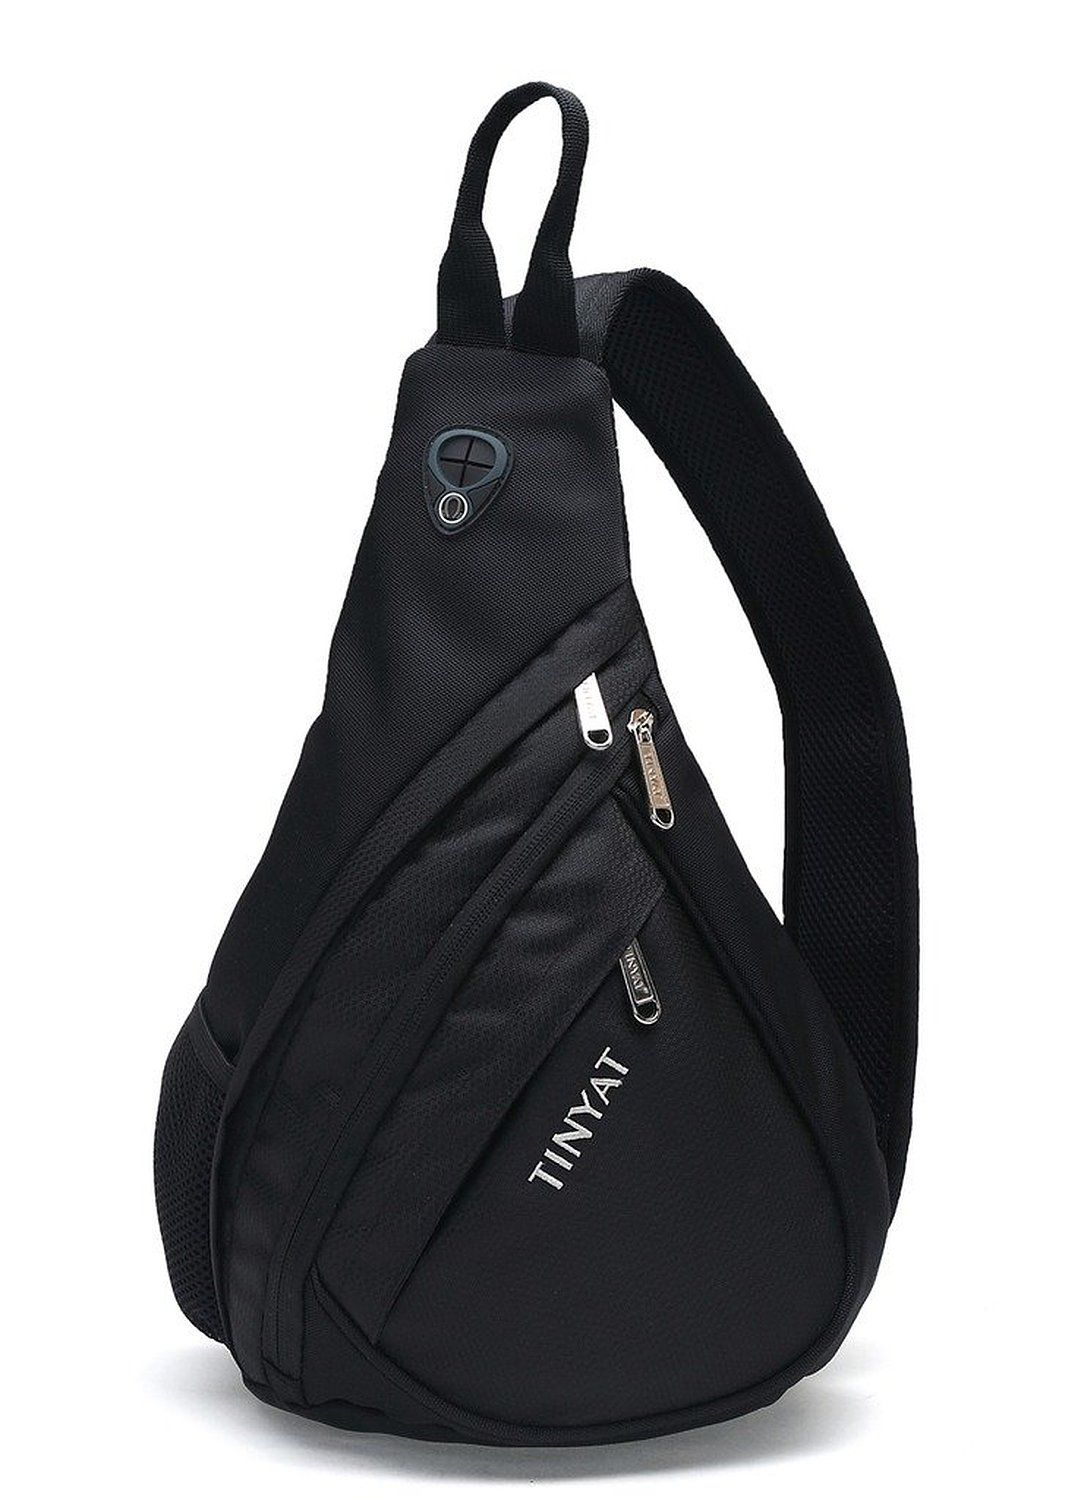 Tinyat Sling Backpack Chest Bag Travel Casual Crossbody Shoulder Bag for  Women Men T509 61683f30c8f3b